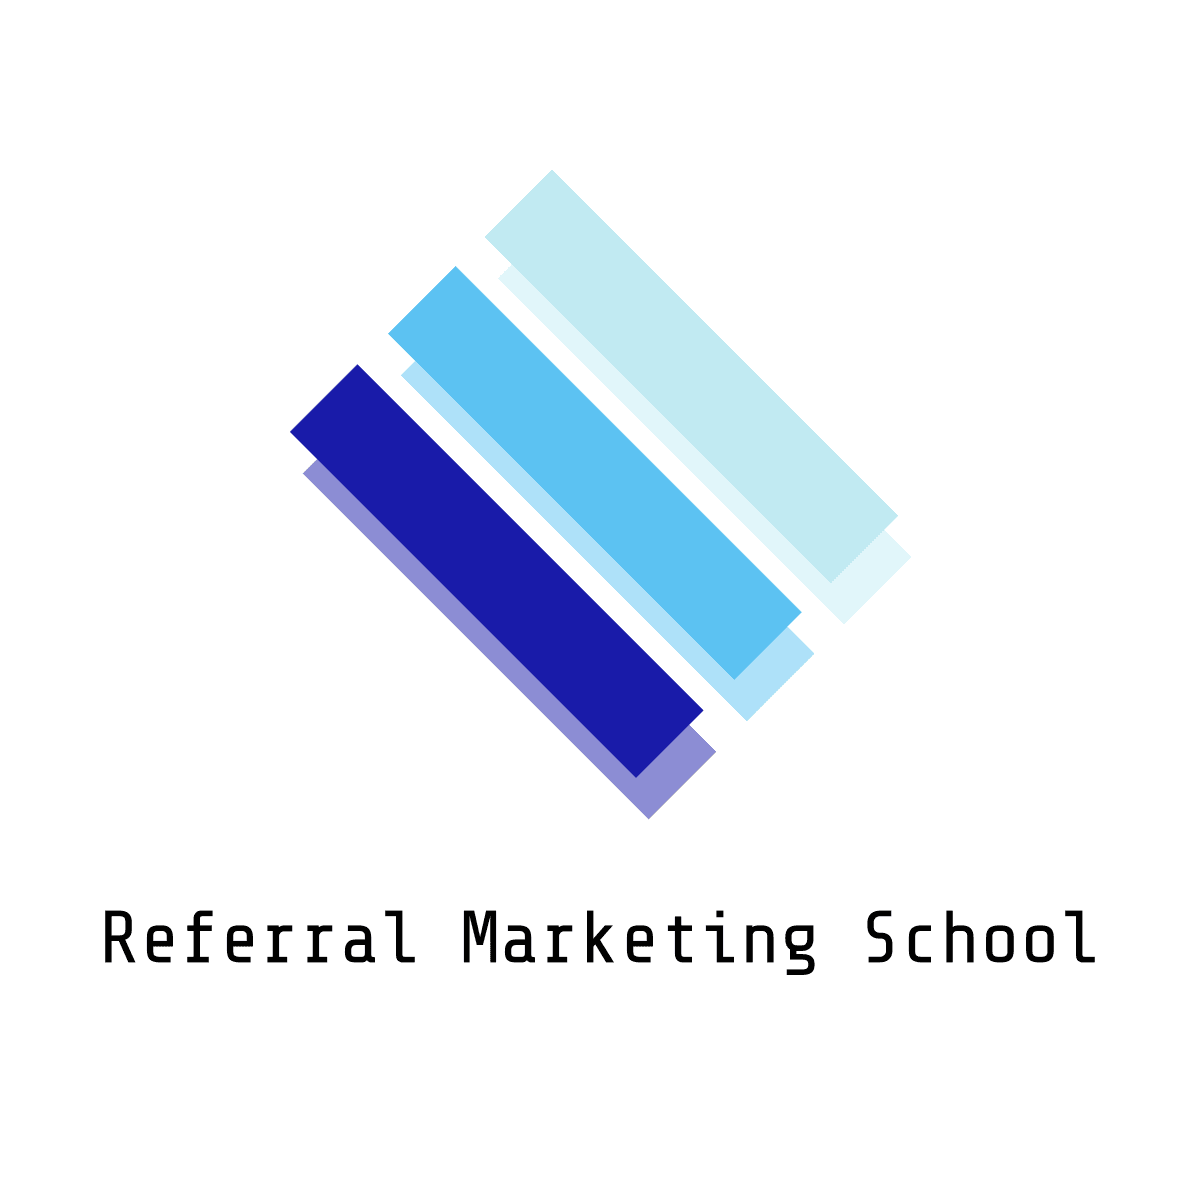 How Dropbox Does Their Referral Program | At Referral